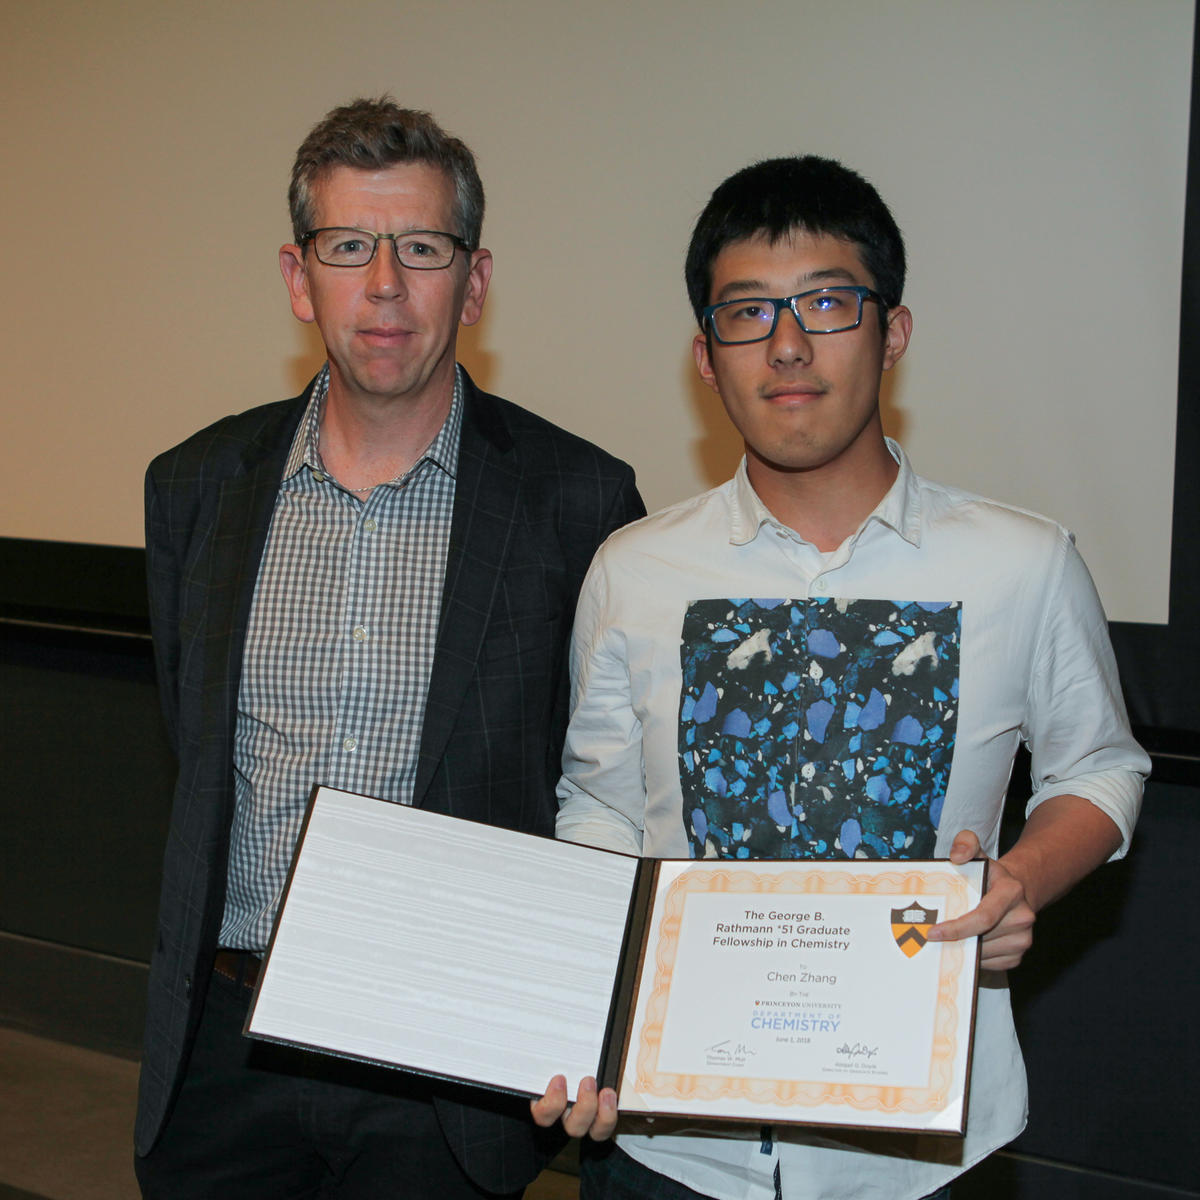 Tom Muir and Chen Zhang (Seyedsayamdost lab), recipient of The George B. Rathmann *51 Graduate Fellowship in Chemistry